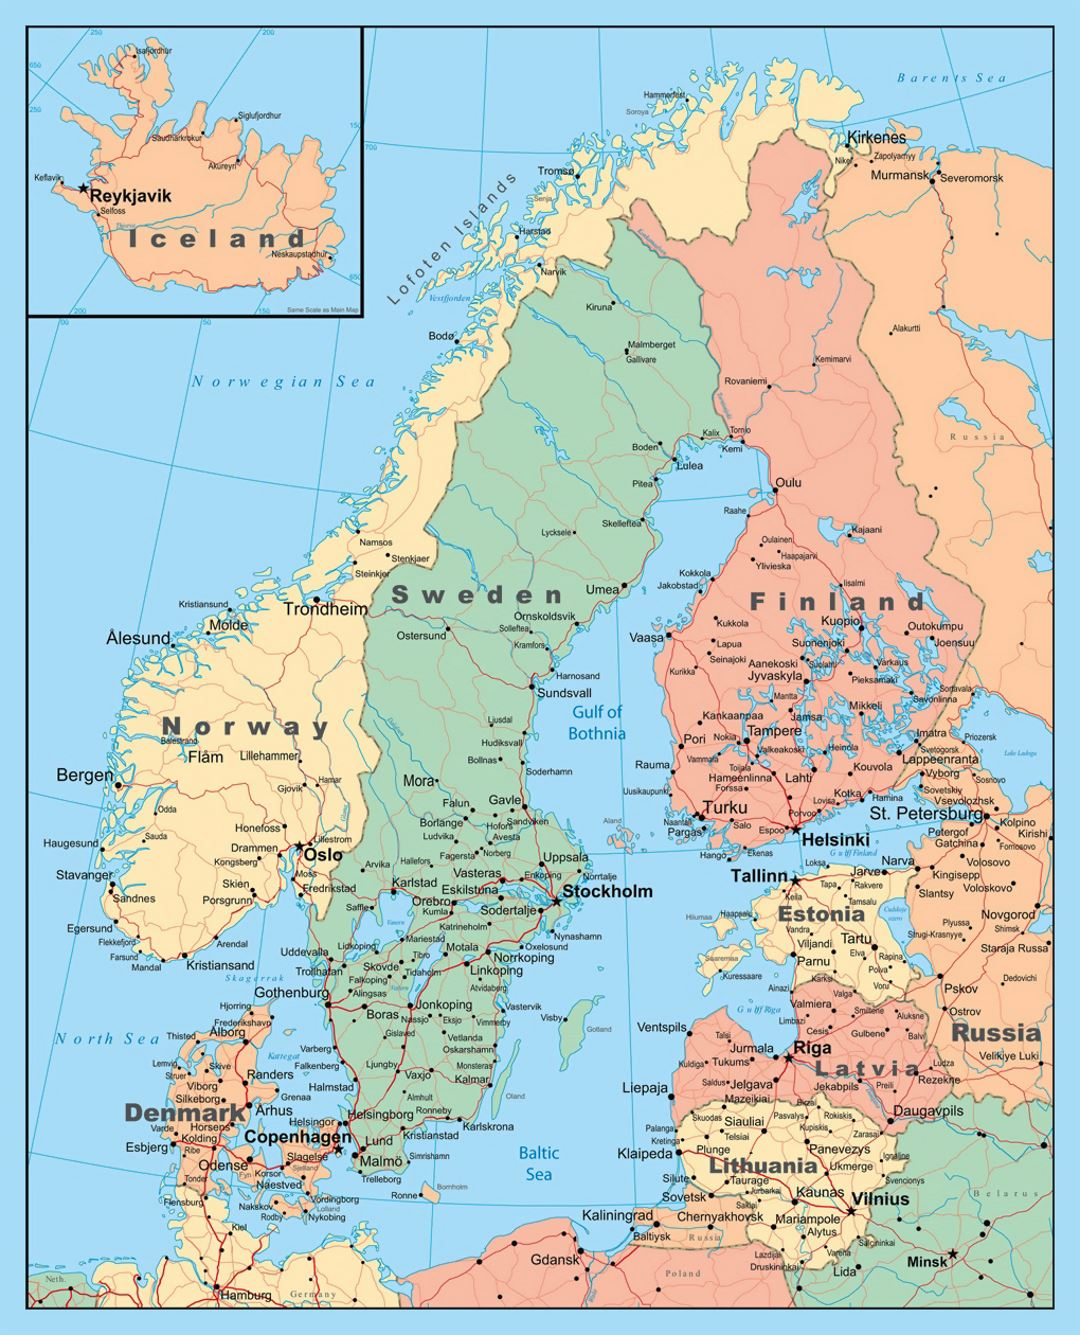 Detailed political map of Scandinavia Baltic and Scandinavia